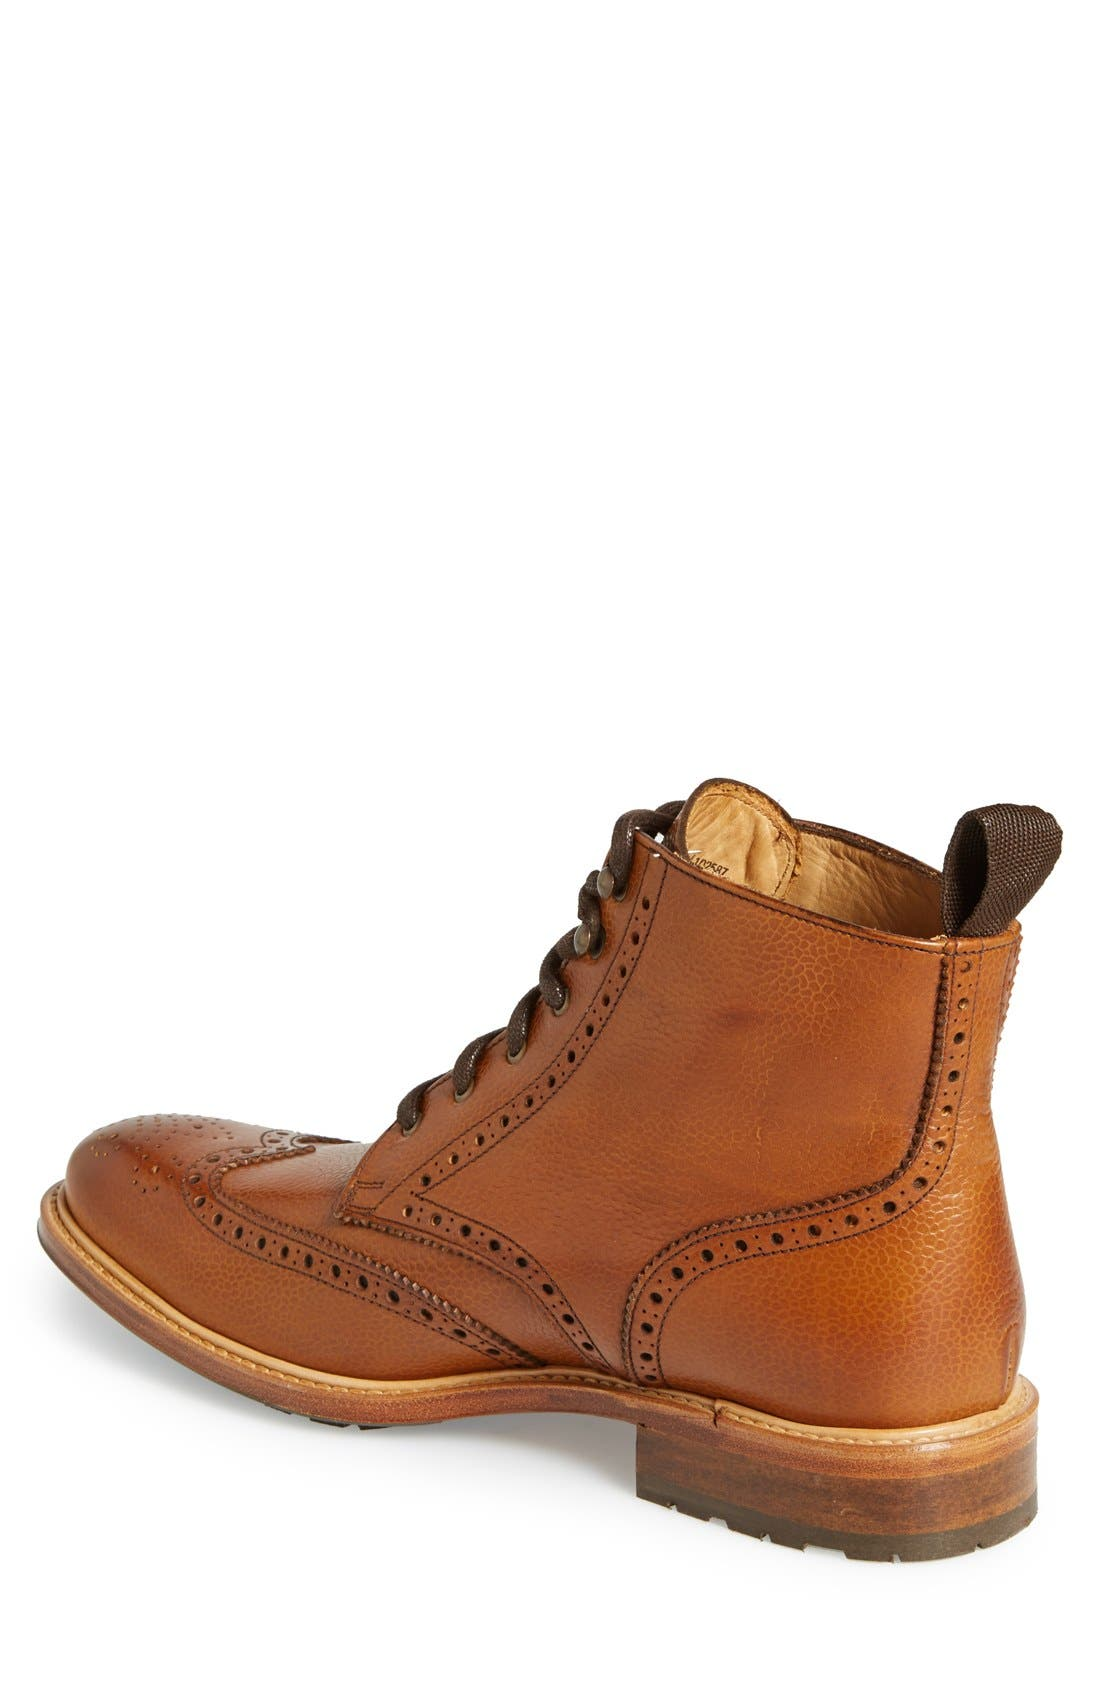 'McCormick' Wingtip Boot,                             Alternate thumbnail 2, color,                             230